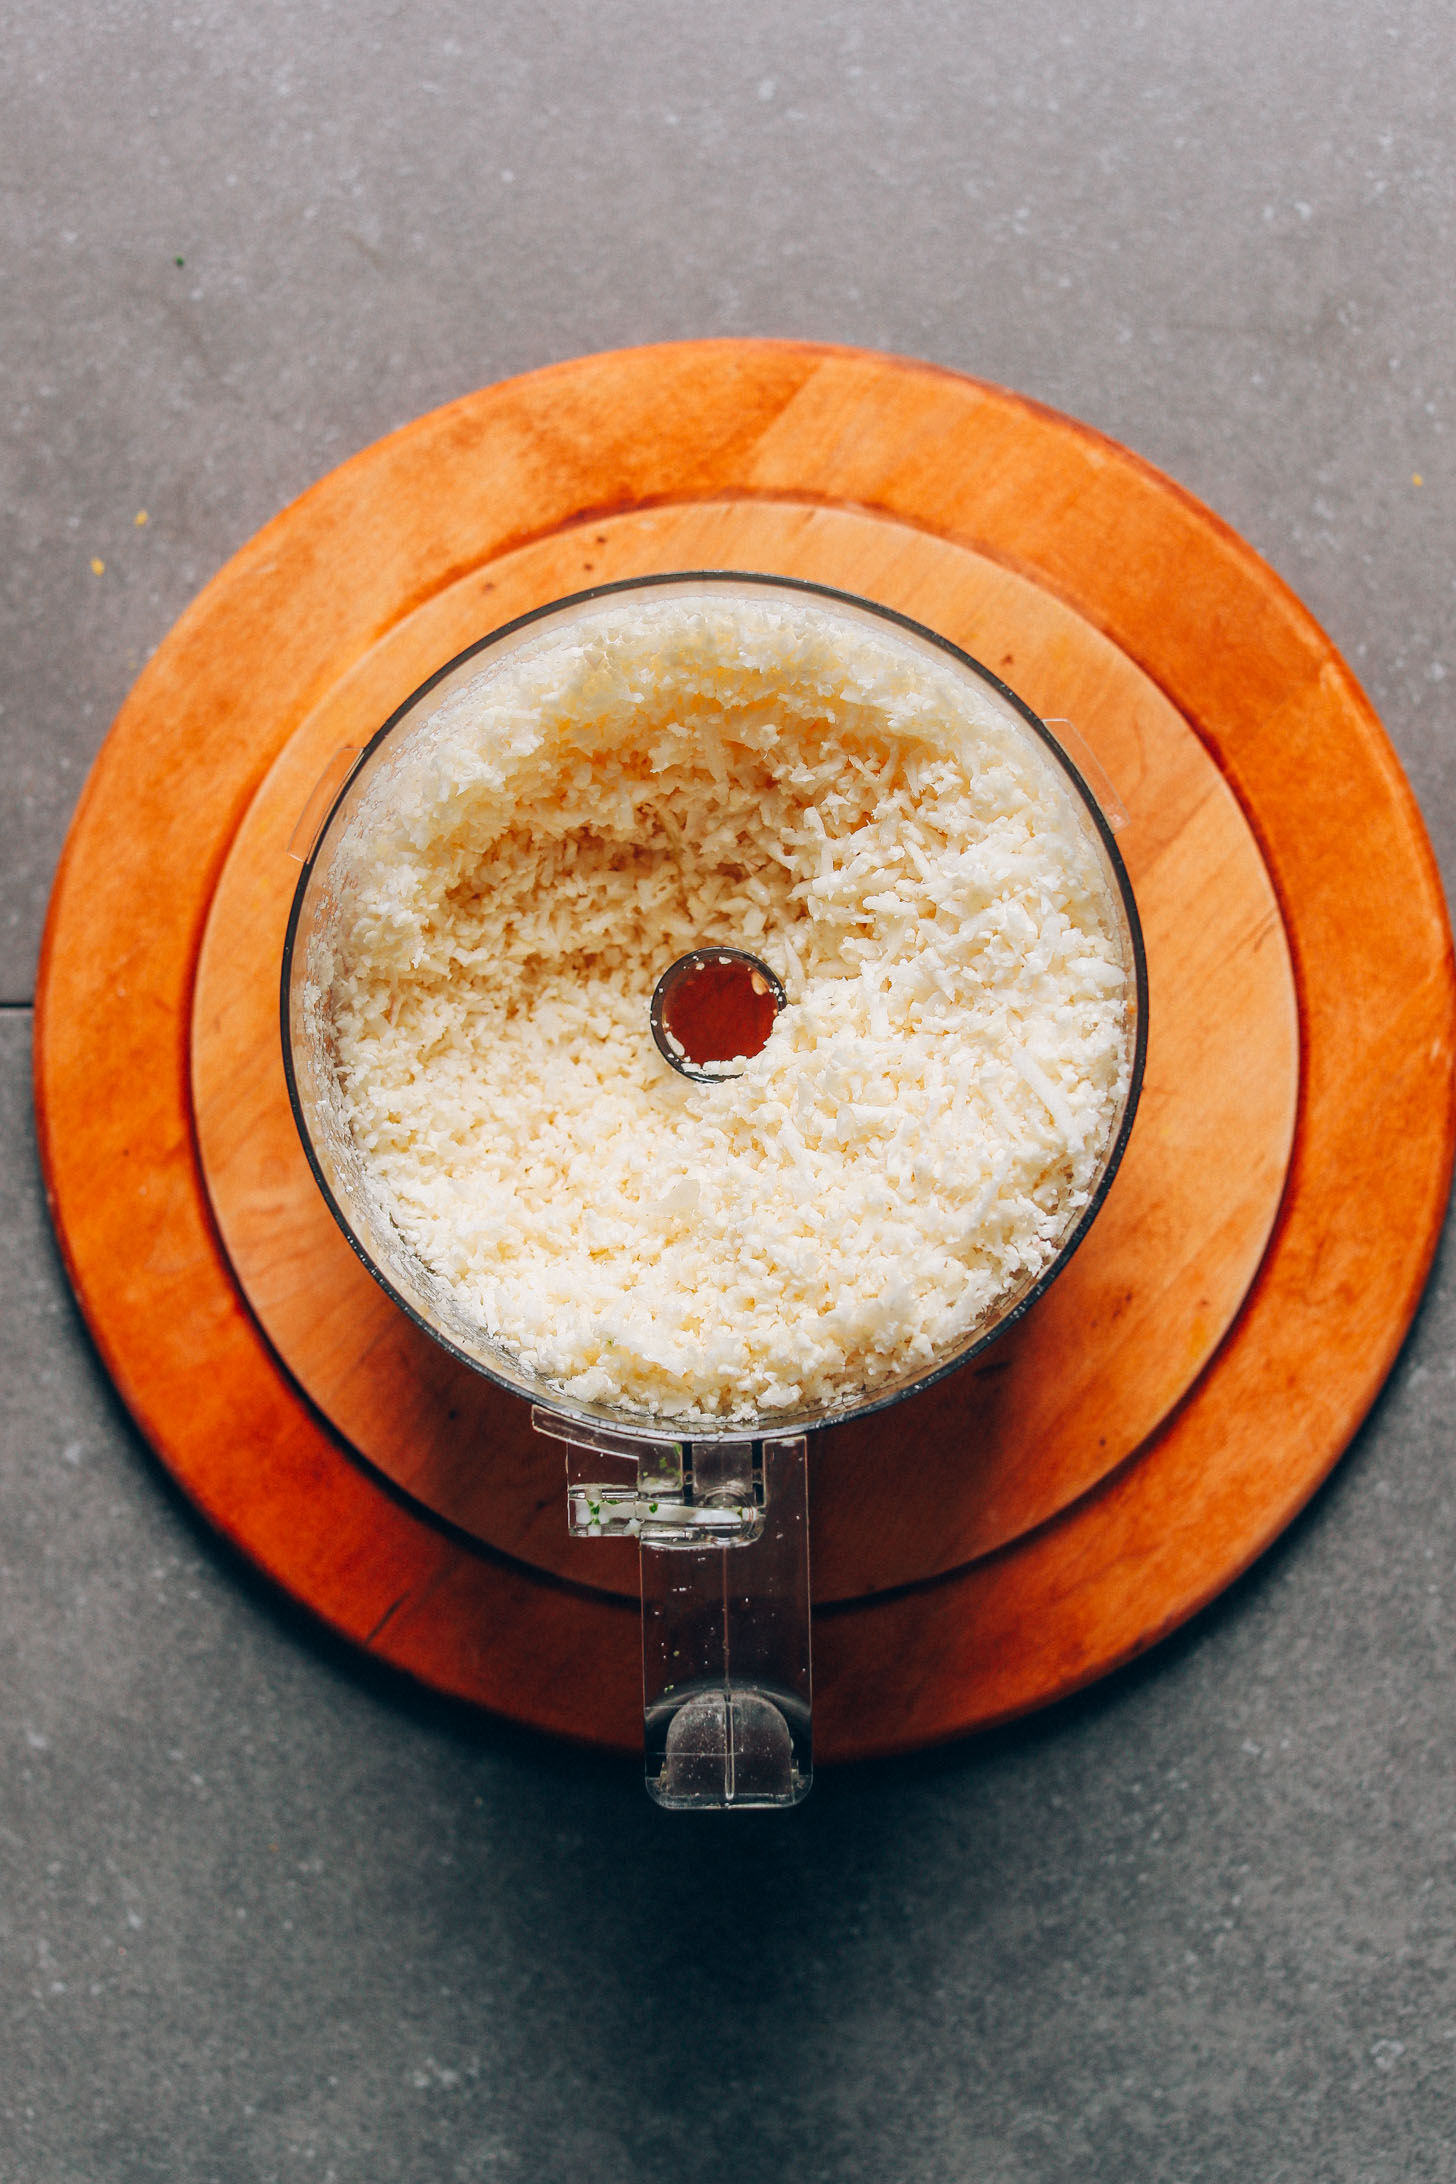 Food processor filled with cauliflower rice